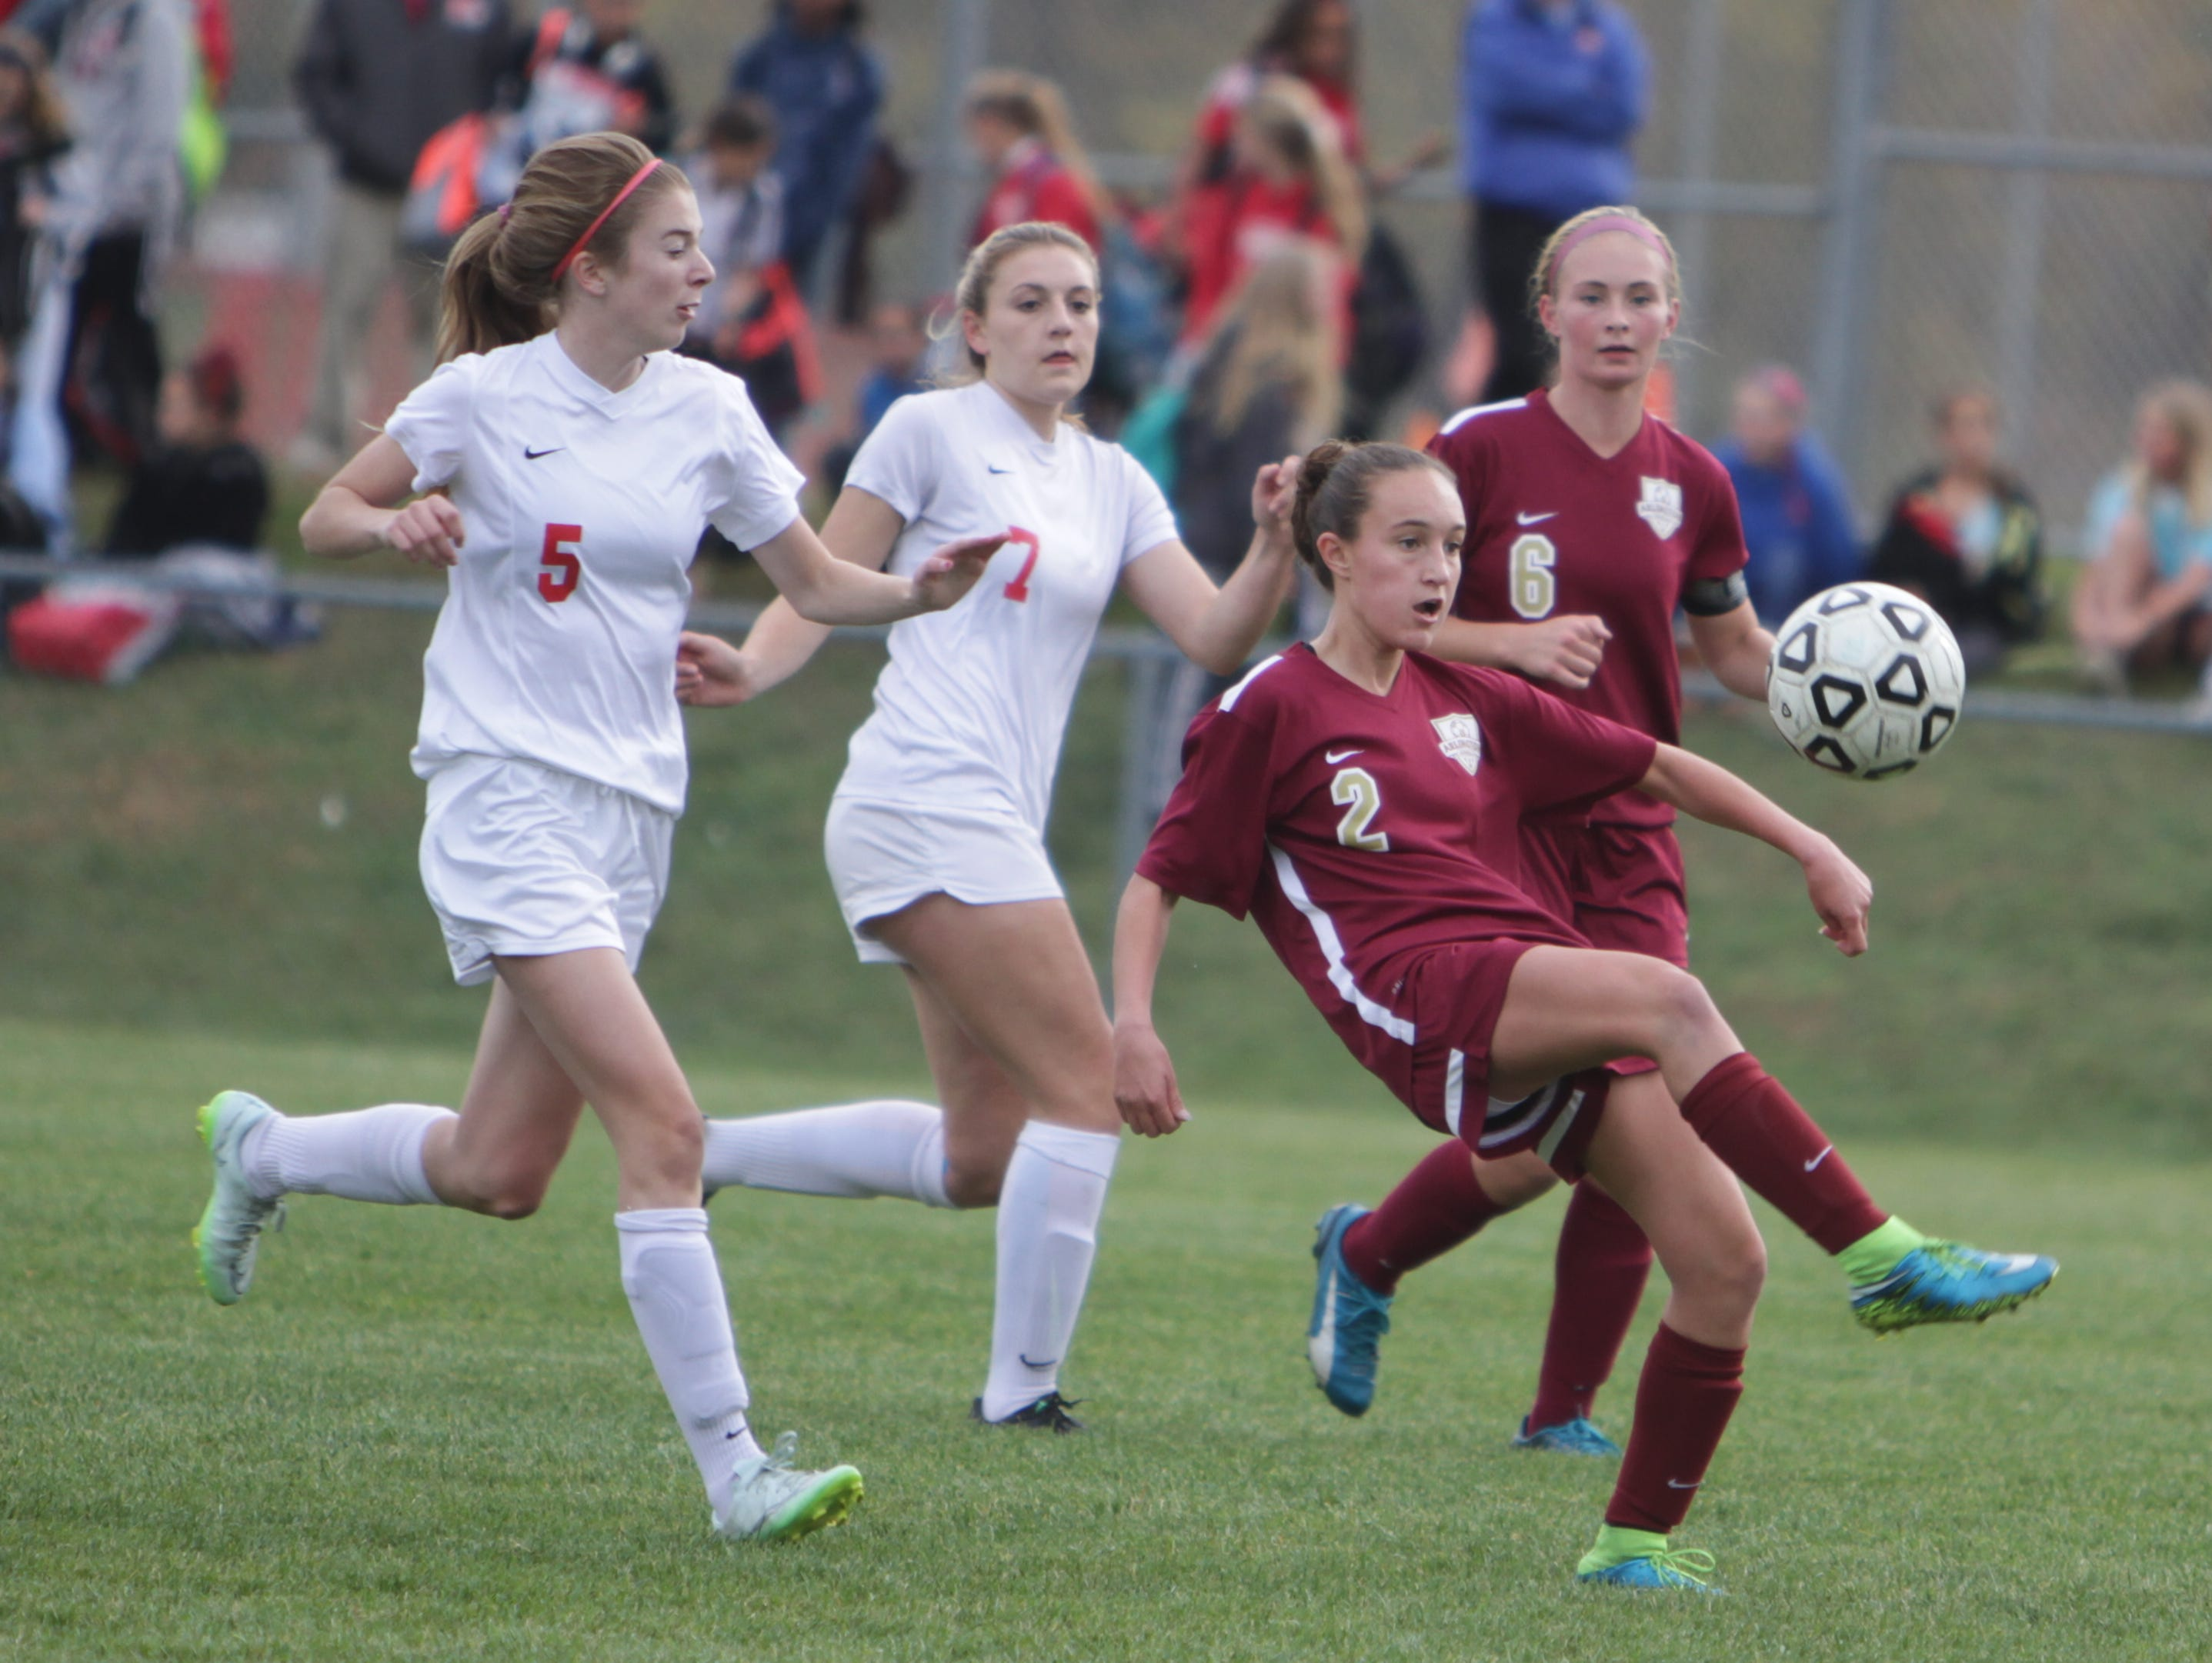 Arlington's Megan Buttinger attempts to kick the ball over her head during a Section 1, Class AA quarterfinal game at North Rockland High School on Tuesday, October 27th, 2015. North Rockland won 2-0.